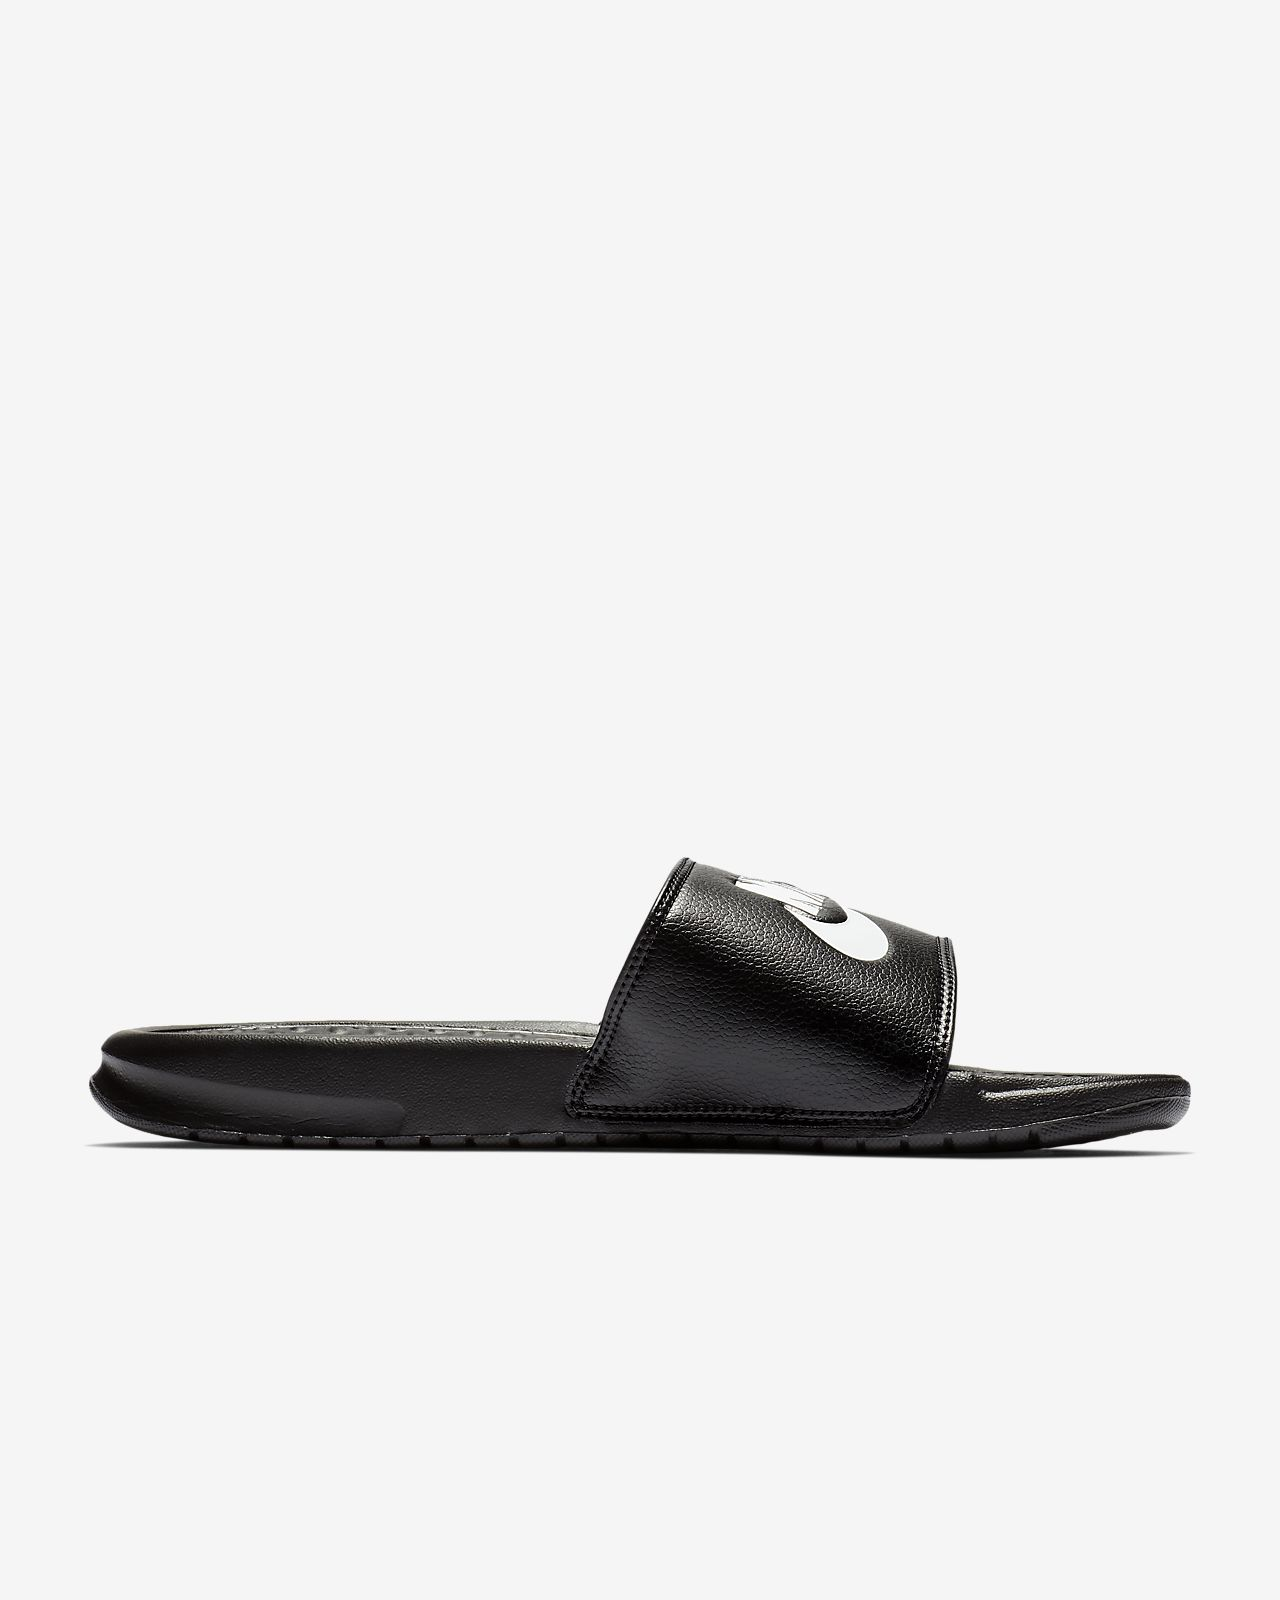 a067b13688a5b Low Resolution Nike Benassi Slide Nike Benassi Slide